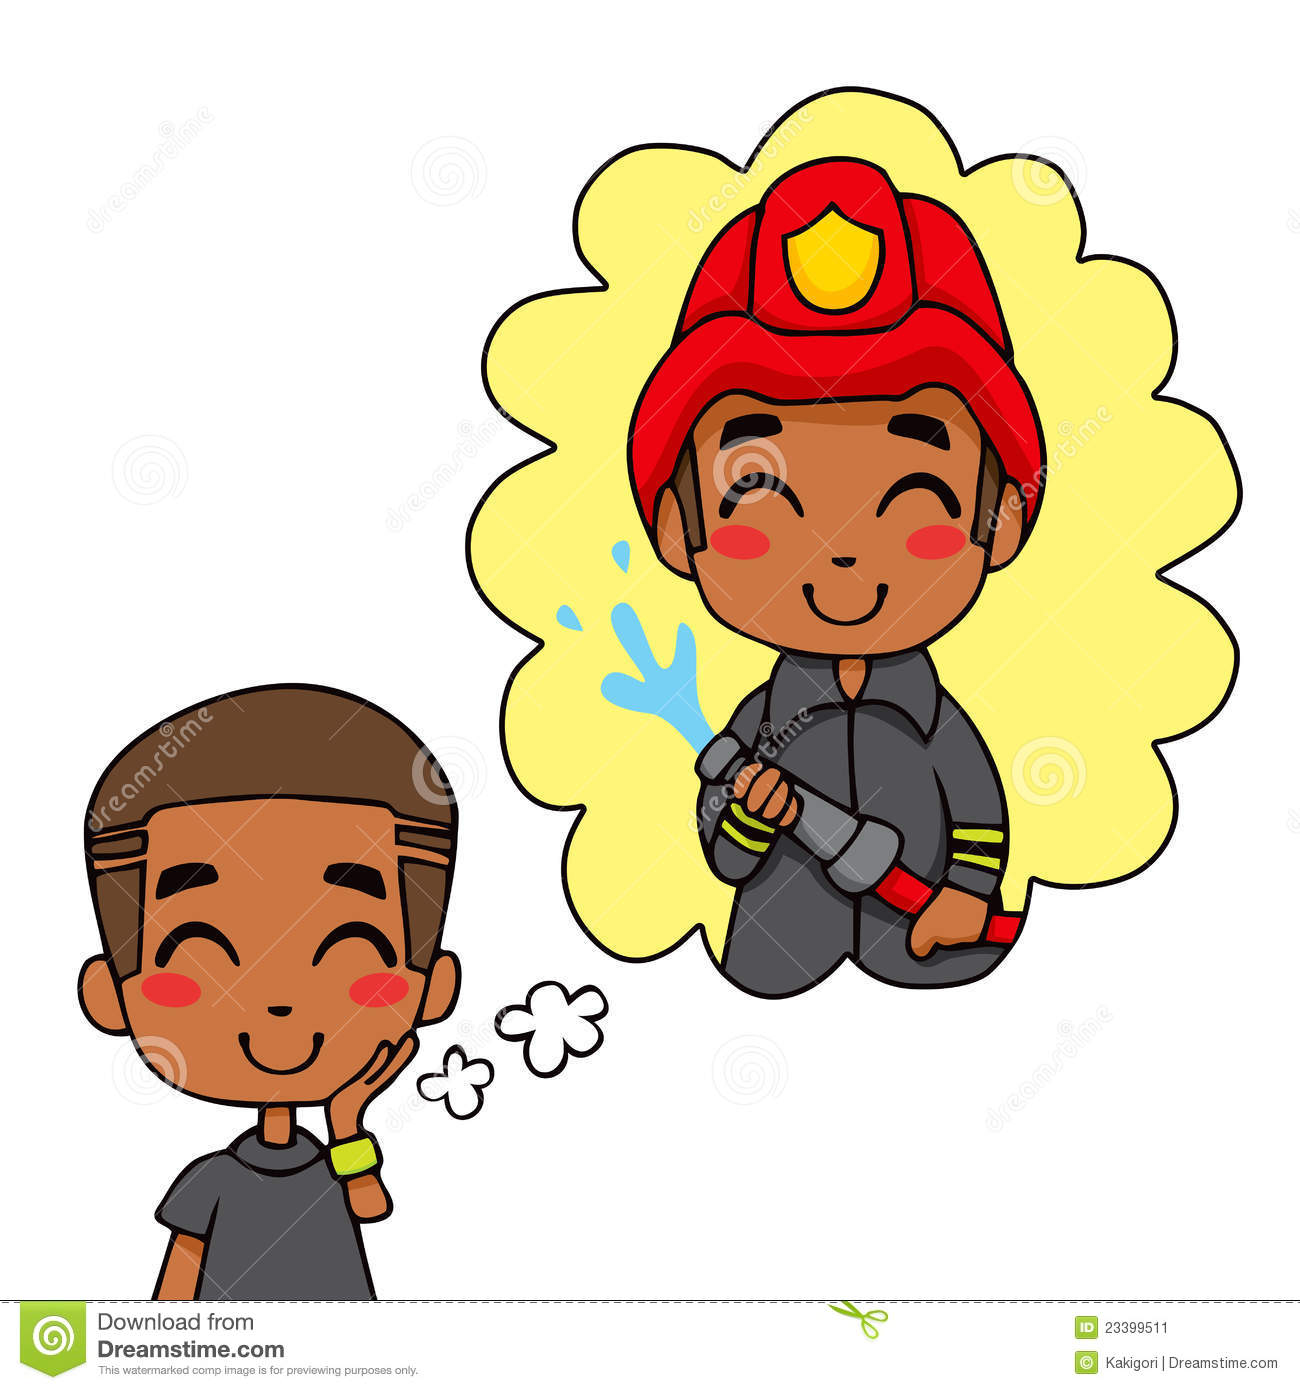 Firefighter Boy Clipart - Clipart Kid